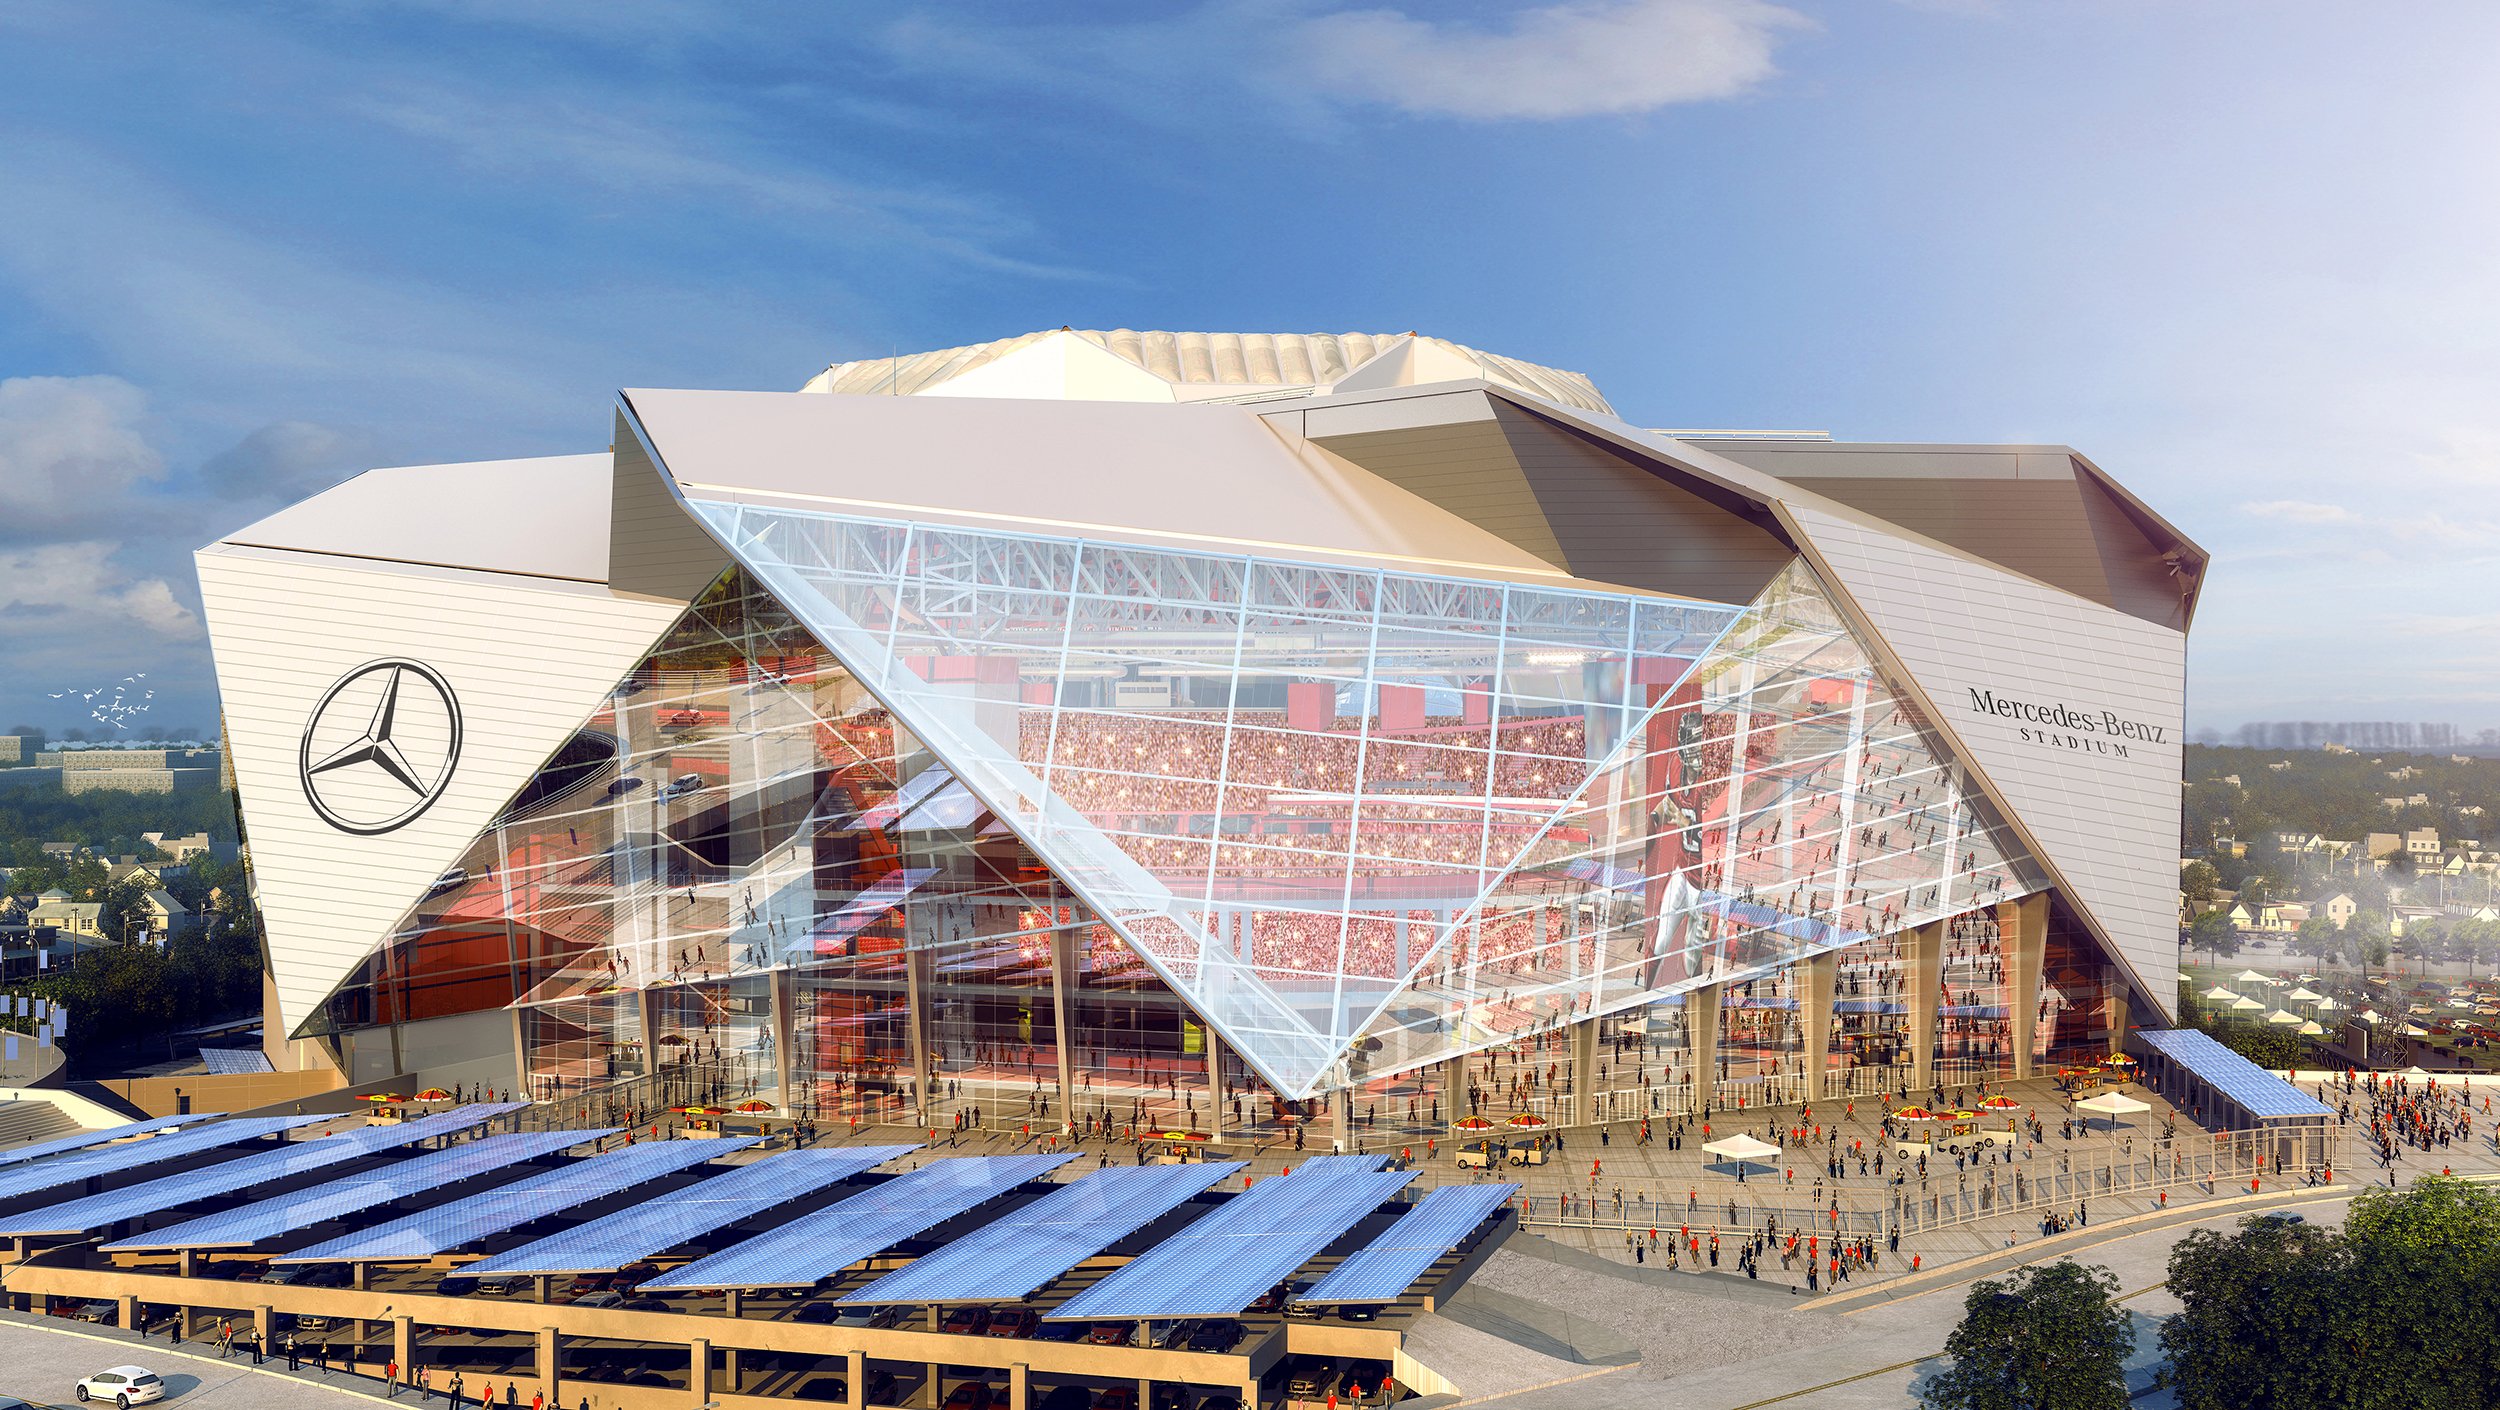 A bright future awaits georgia world congress center authority a retractable roof stadium will be home to super bowl liii gumiabroncs Images